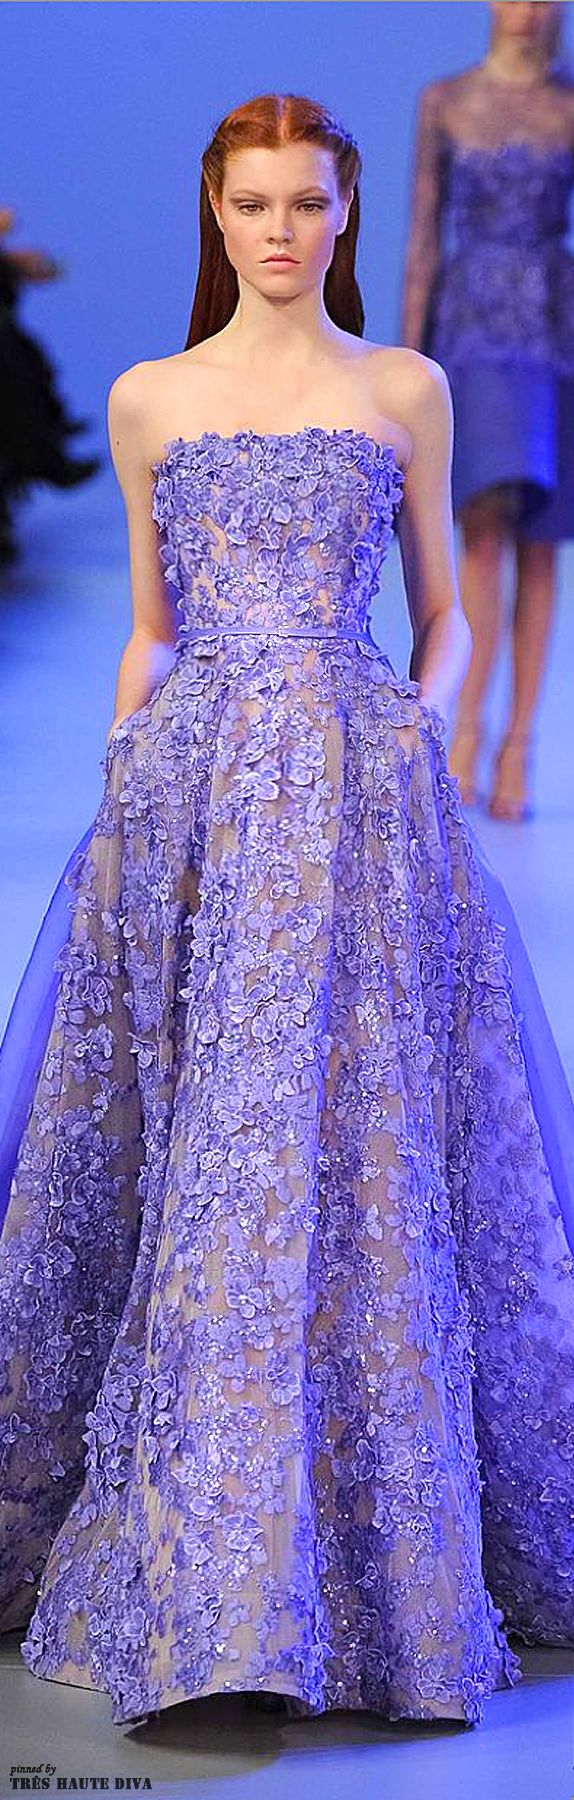 Elie Saab Spring 2014 Couture - LOVE this dress but the model looks like she hates it